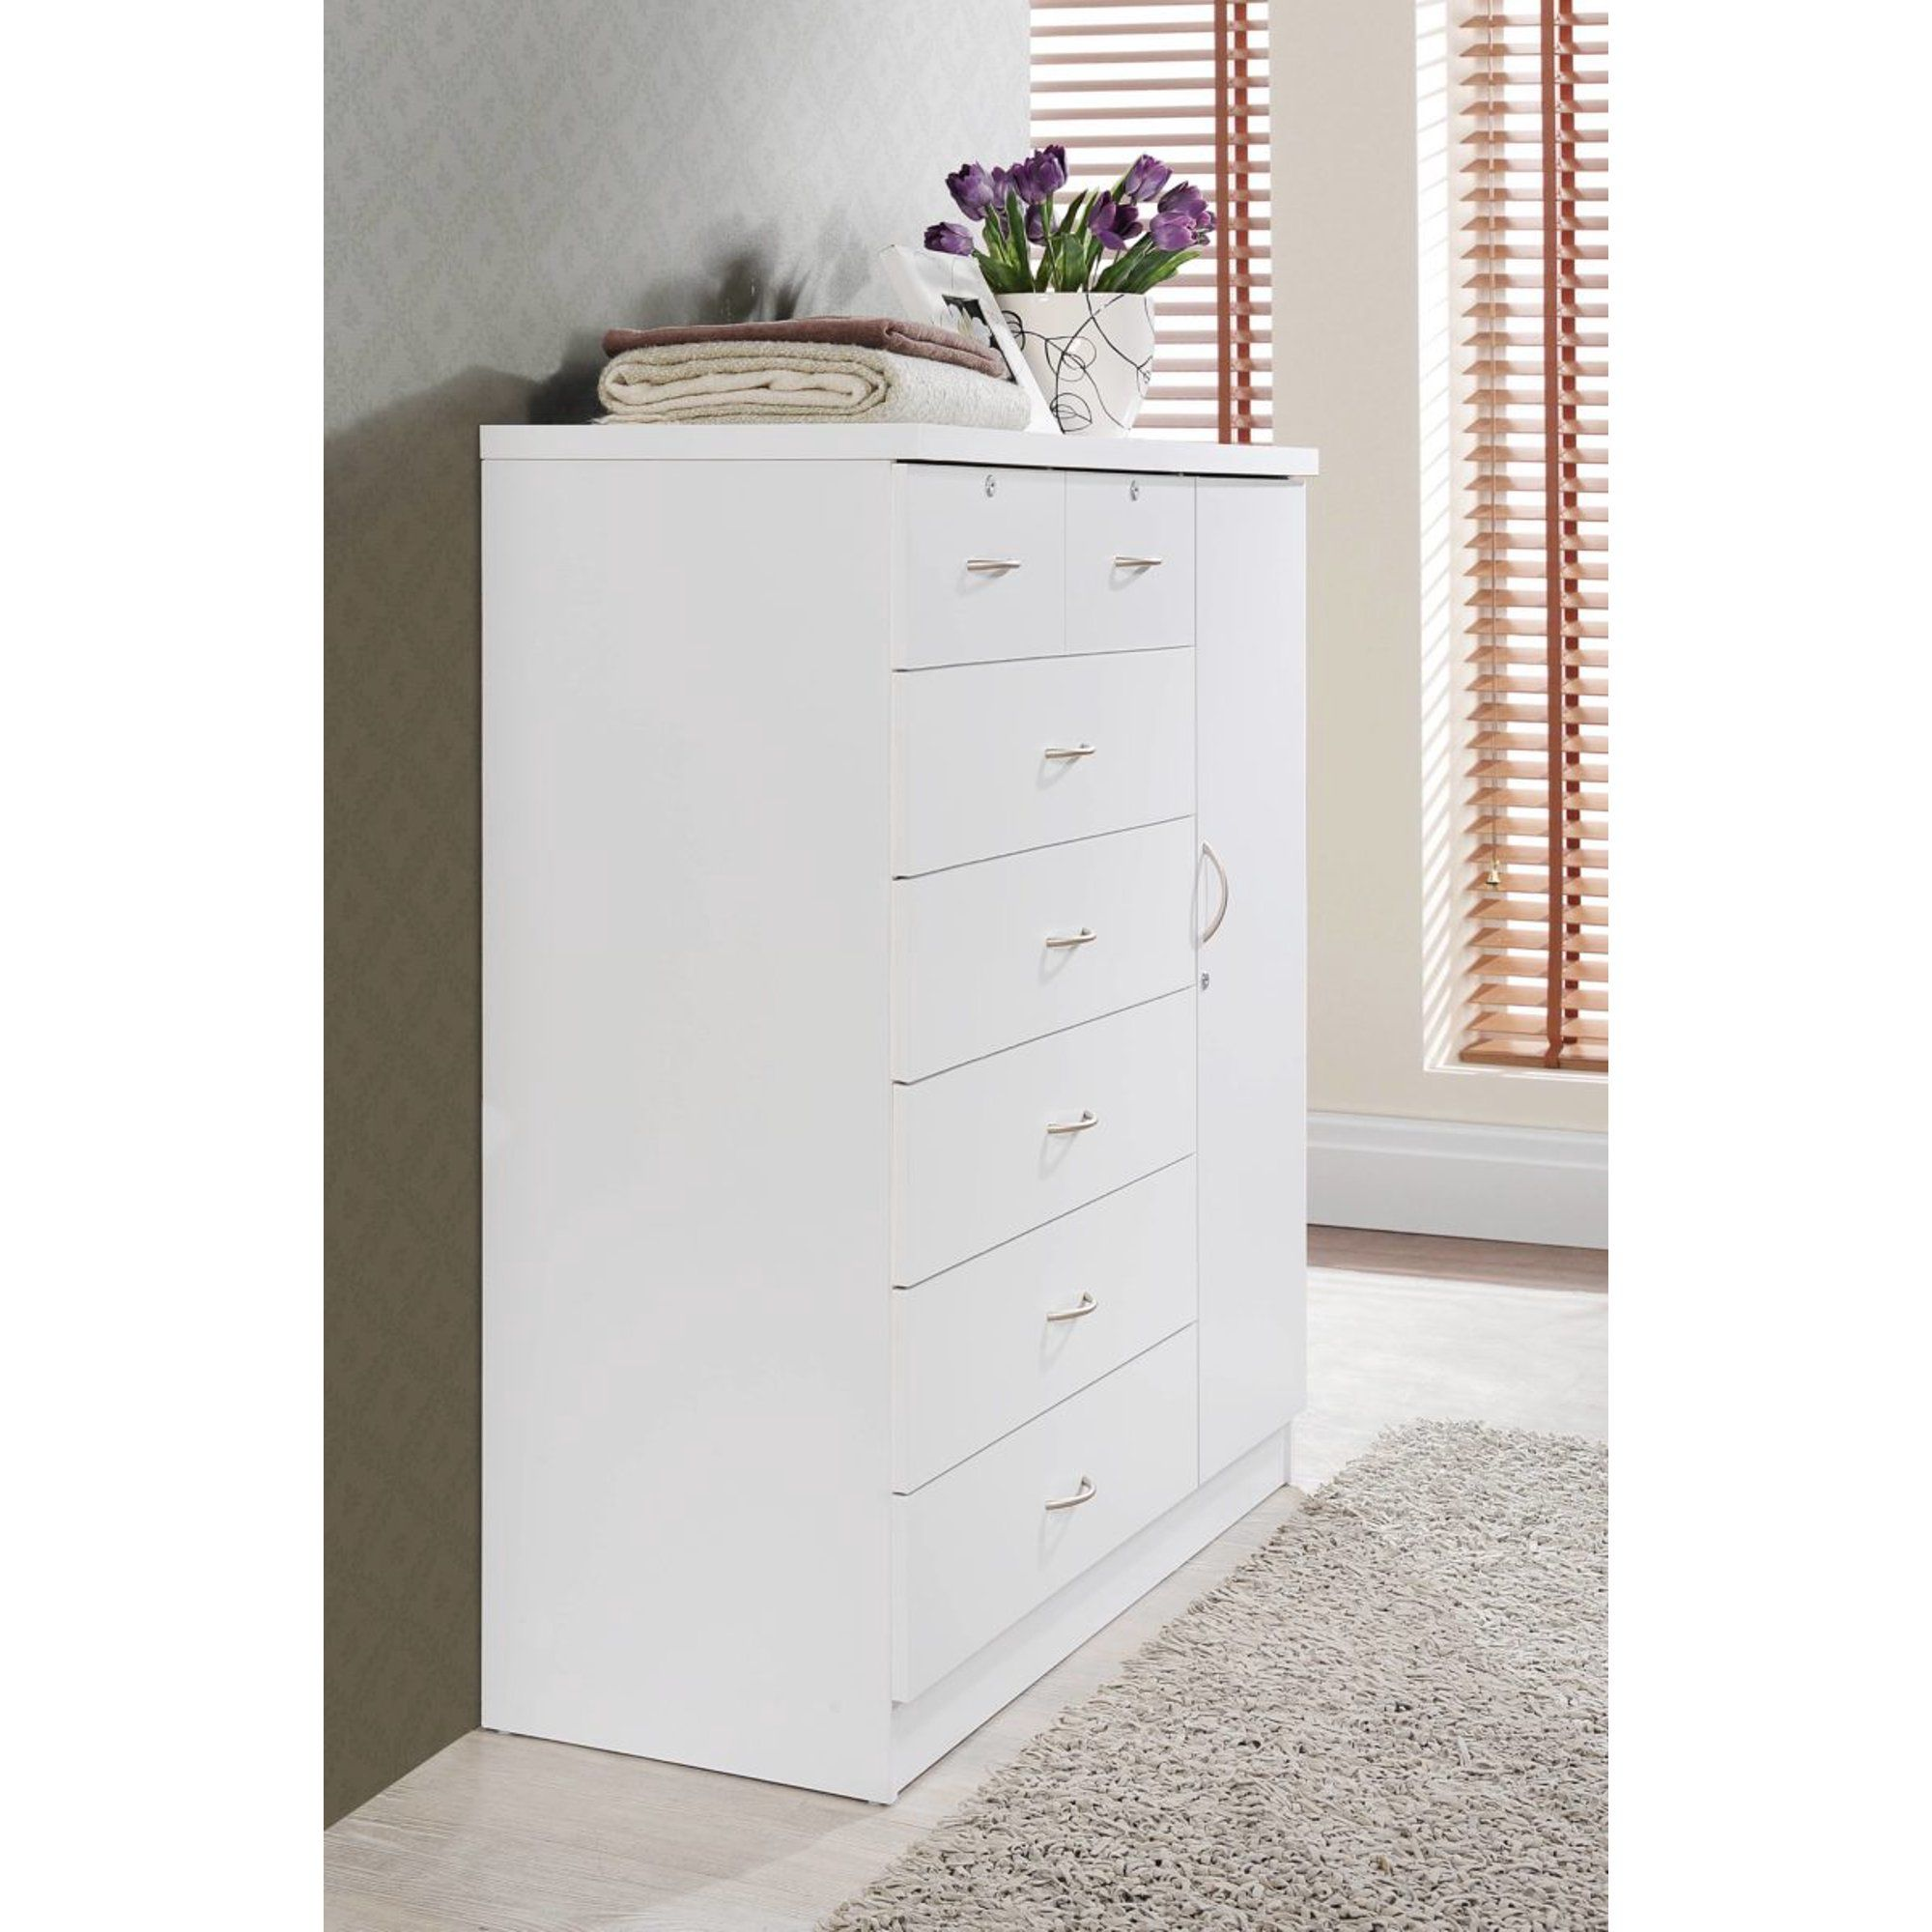 Hodedah 7 Drawer Dresser With Side Cabinet Equipped With 3 Shelves White Walmart Com In 2021 Drawers Side Cabinet Furniture Choice [ 2000 x 2000 Pixel ]